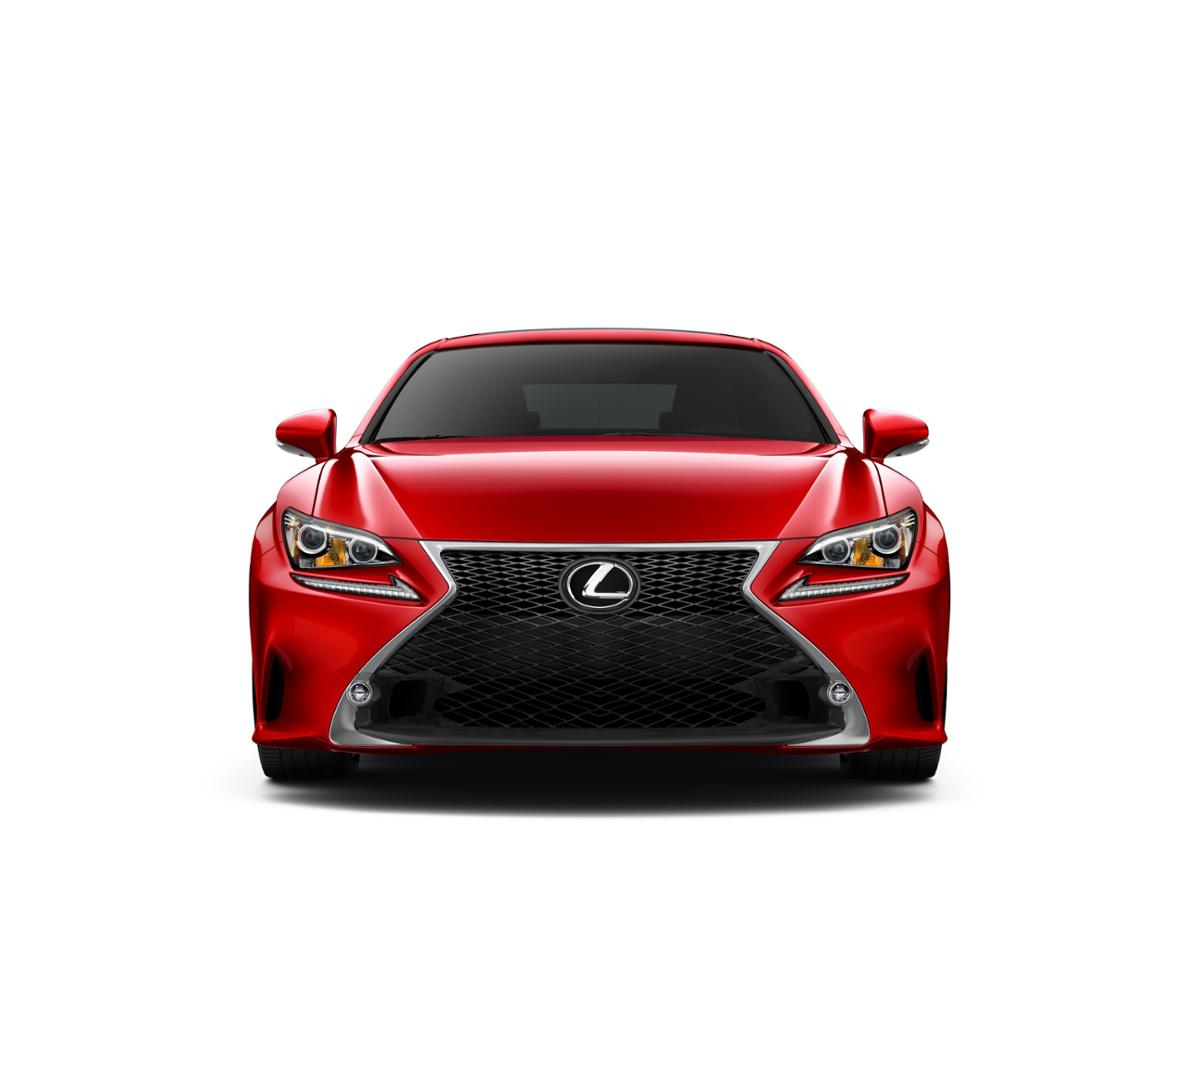 2017 Lexus Rc Exterior: New Car 2017 Infrared Lexus RC 300 F Sport For Sale In